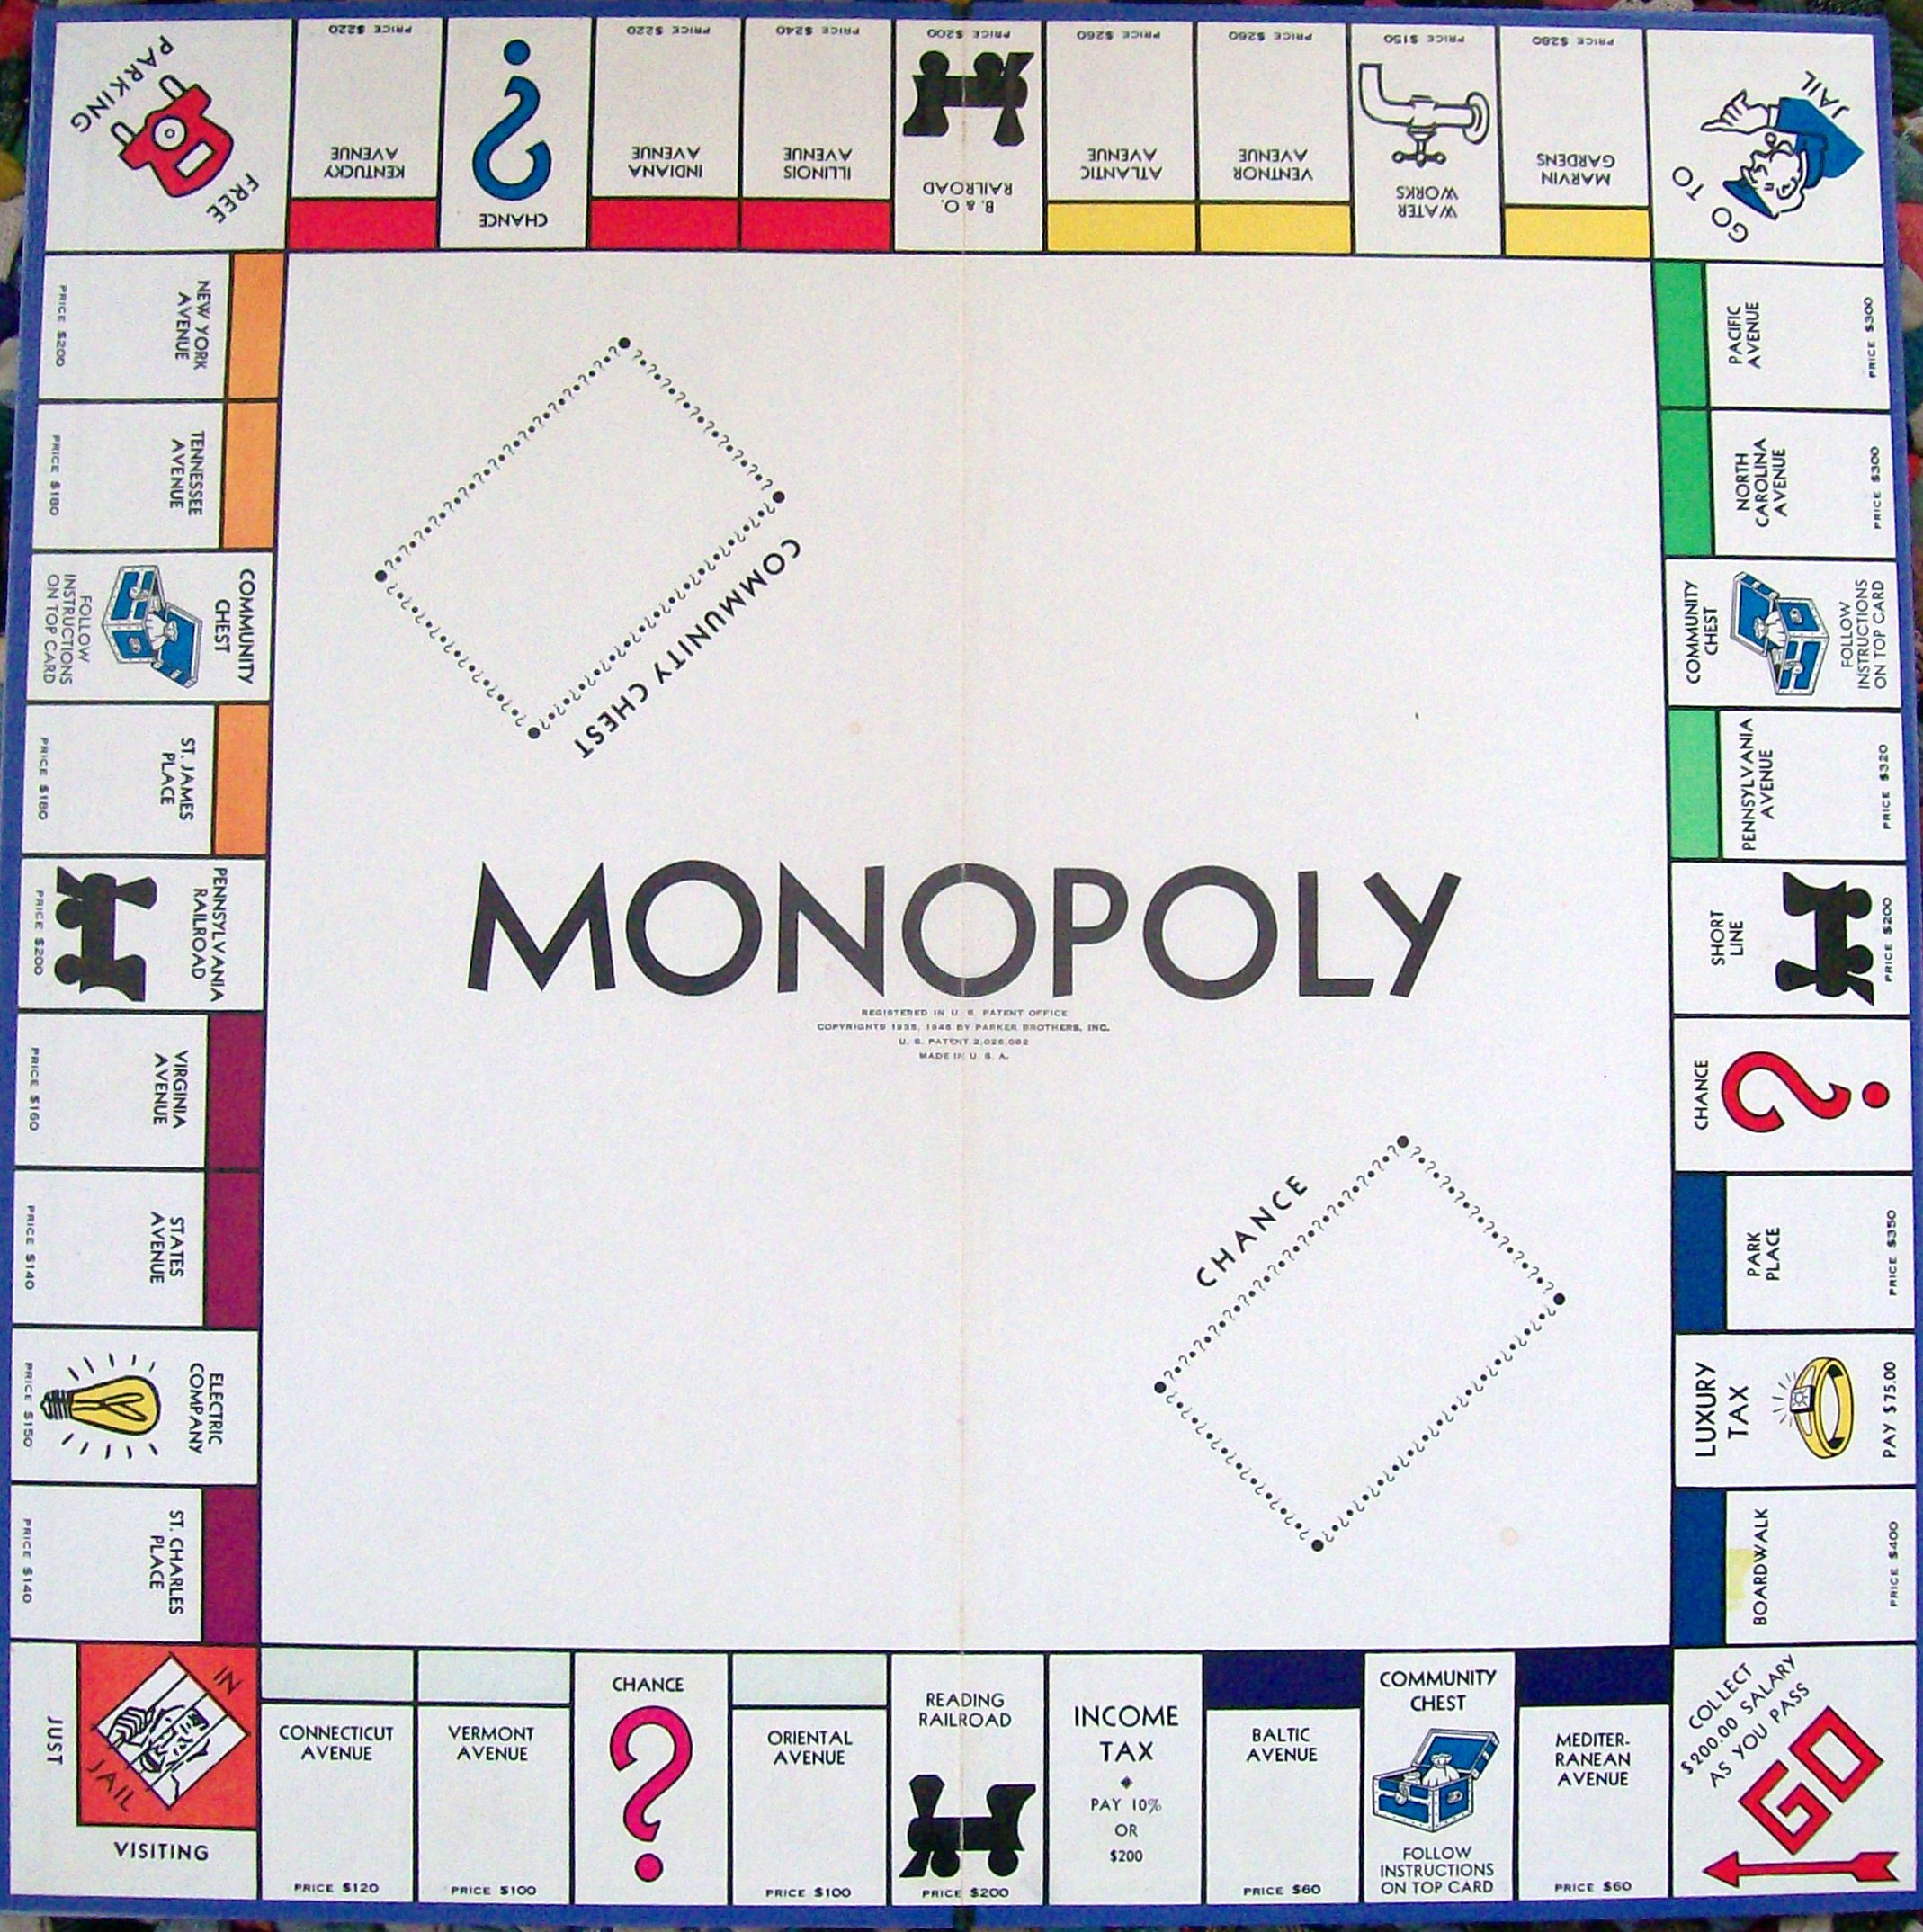 parker brothers monopoly game board